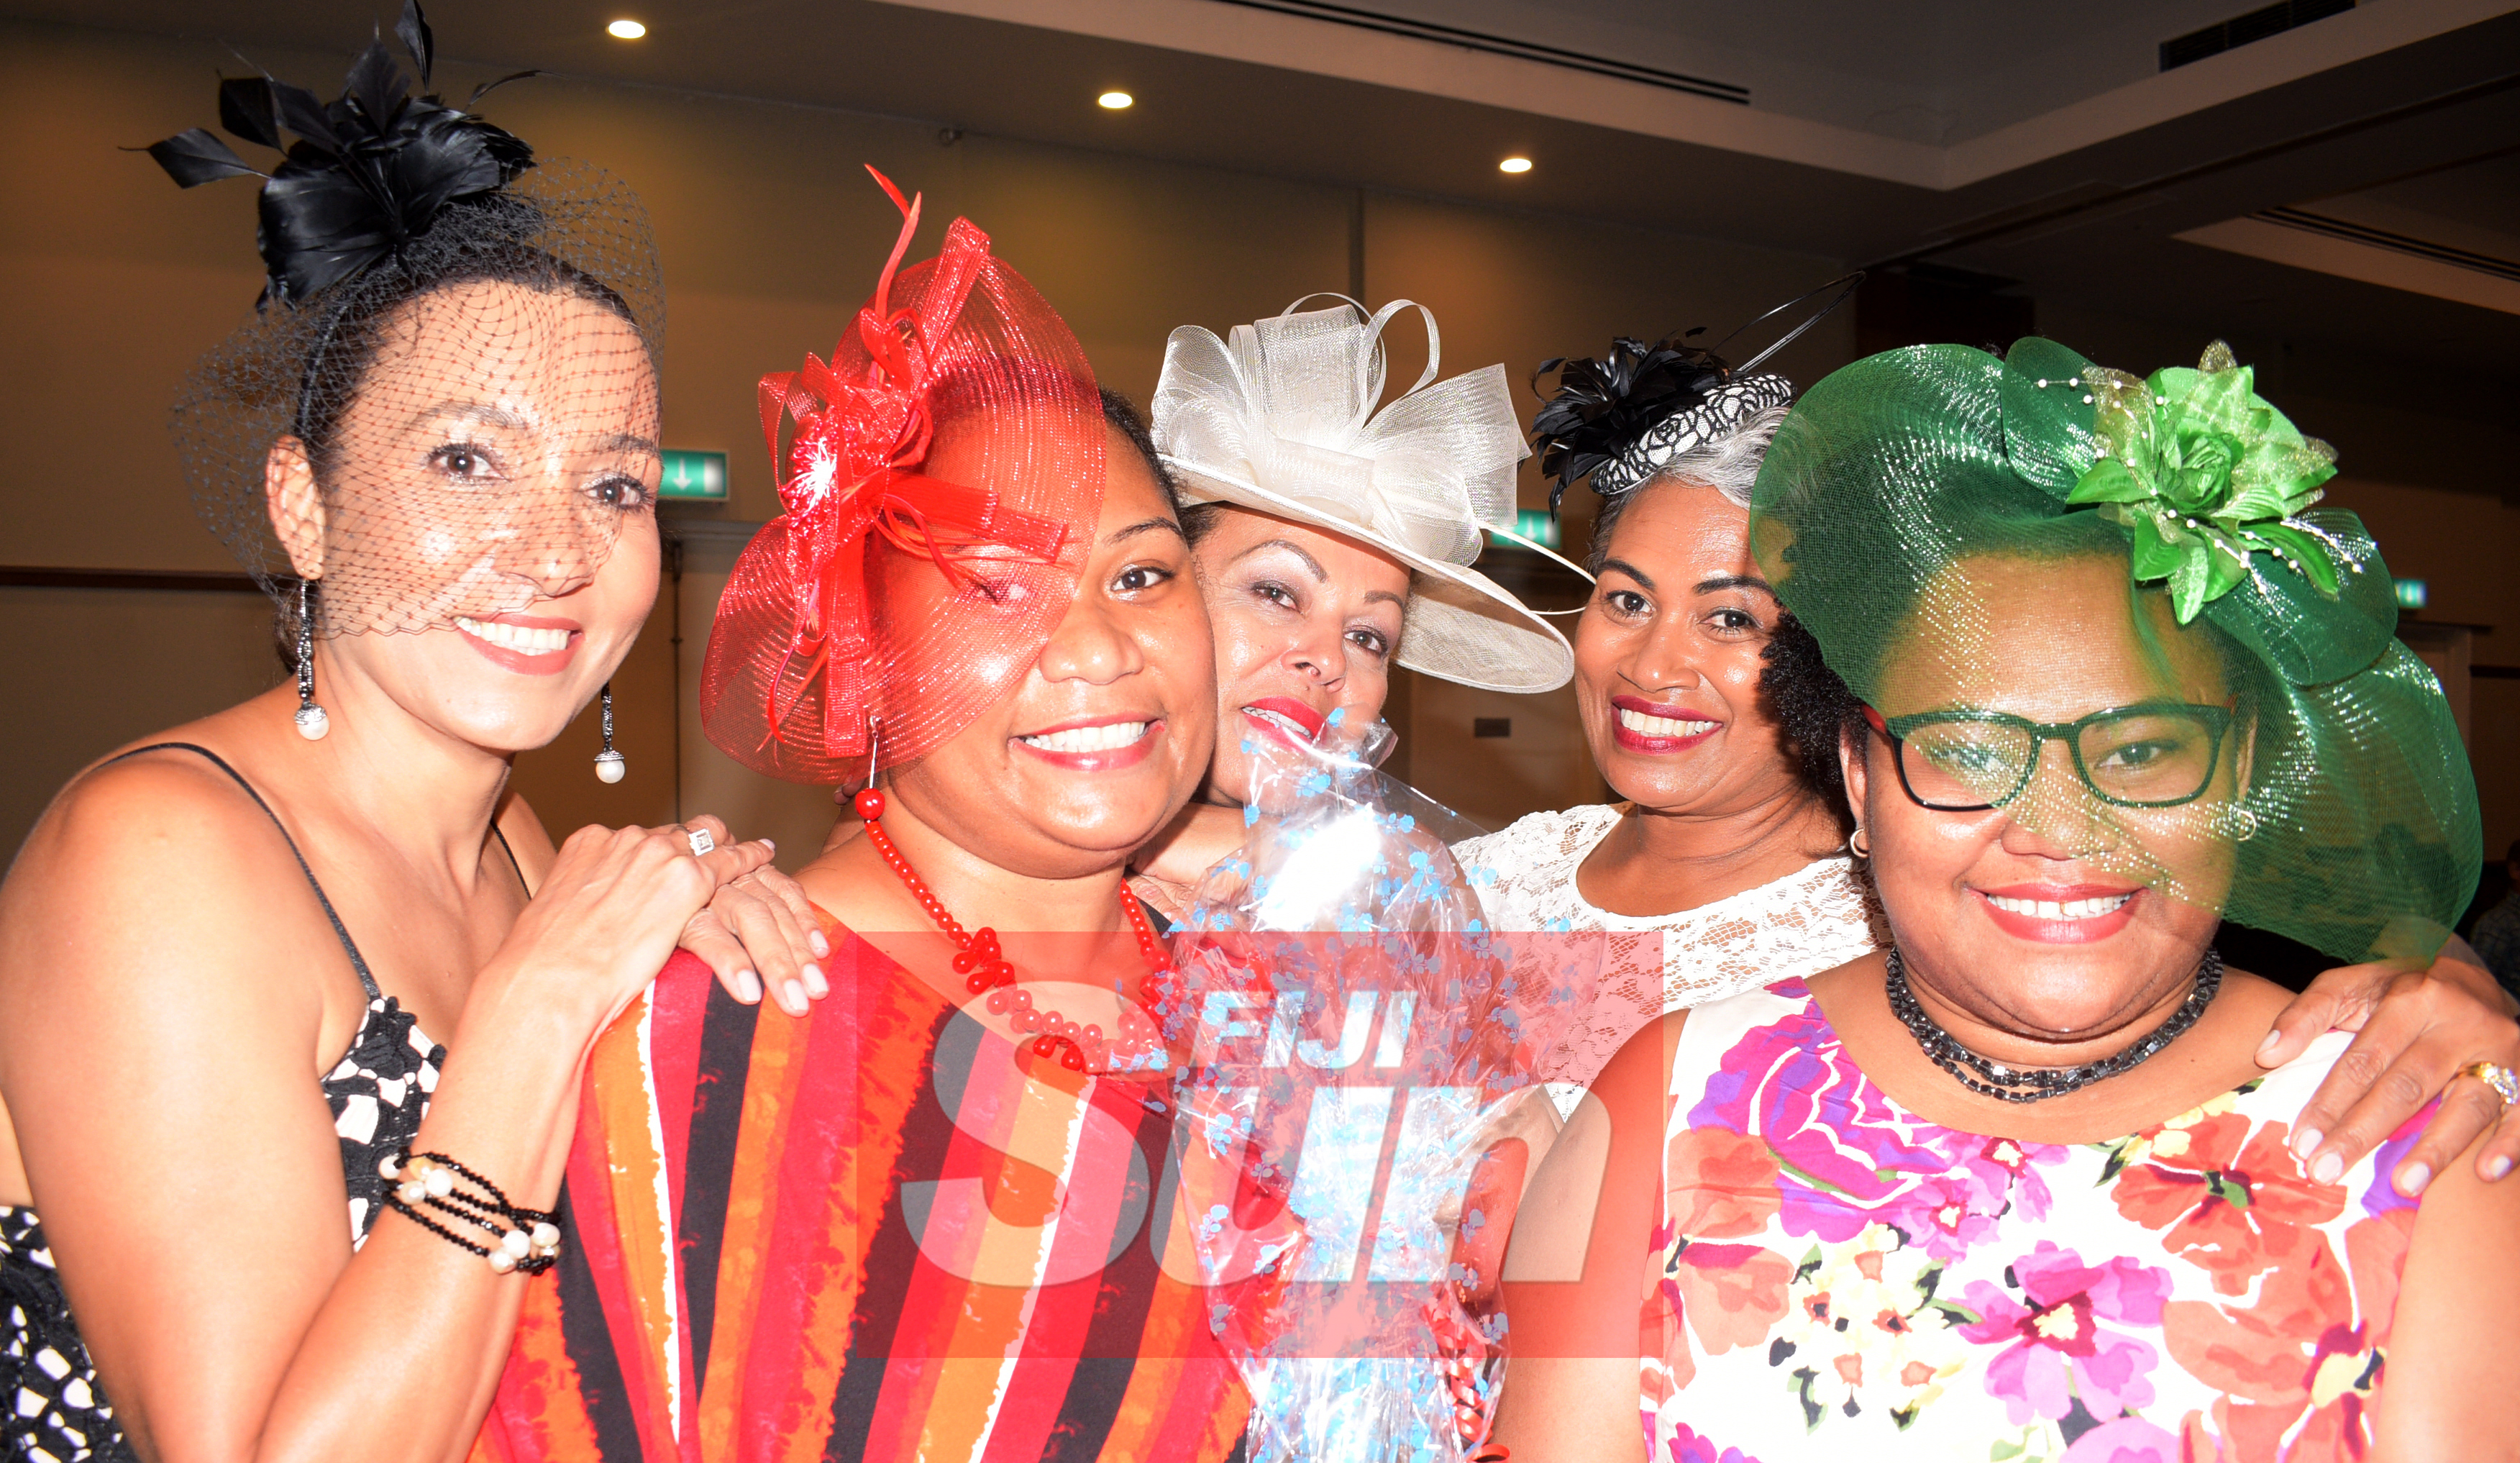 From left-Judy Compain, Lei Lanyon, Mere Nageshwar Mereita Mcarthy and Mereti Cokanasiga with their special Melbourne cup hats during Rotary Club Suva organized Melbourne Cup race event at Grand Pacific Hotel on November 5, 2019. Photo: Ronald Kumar.